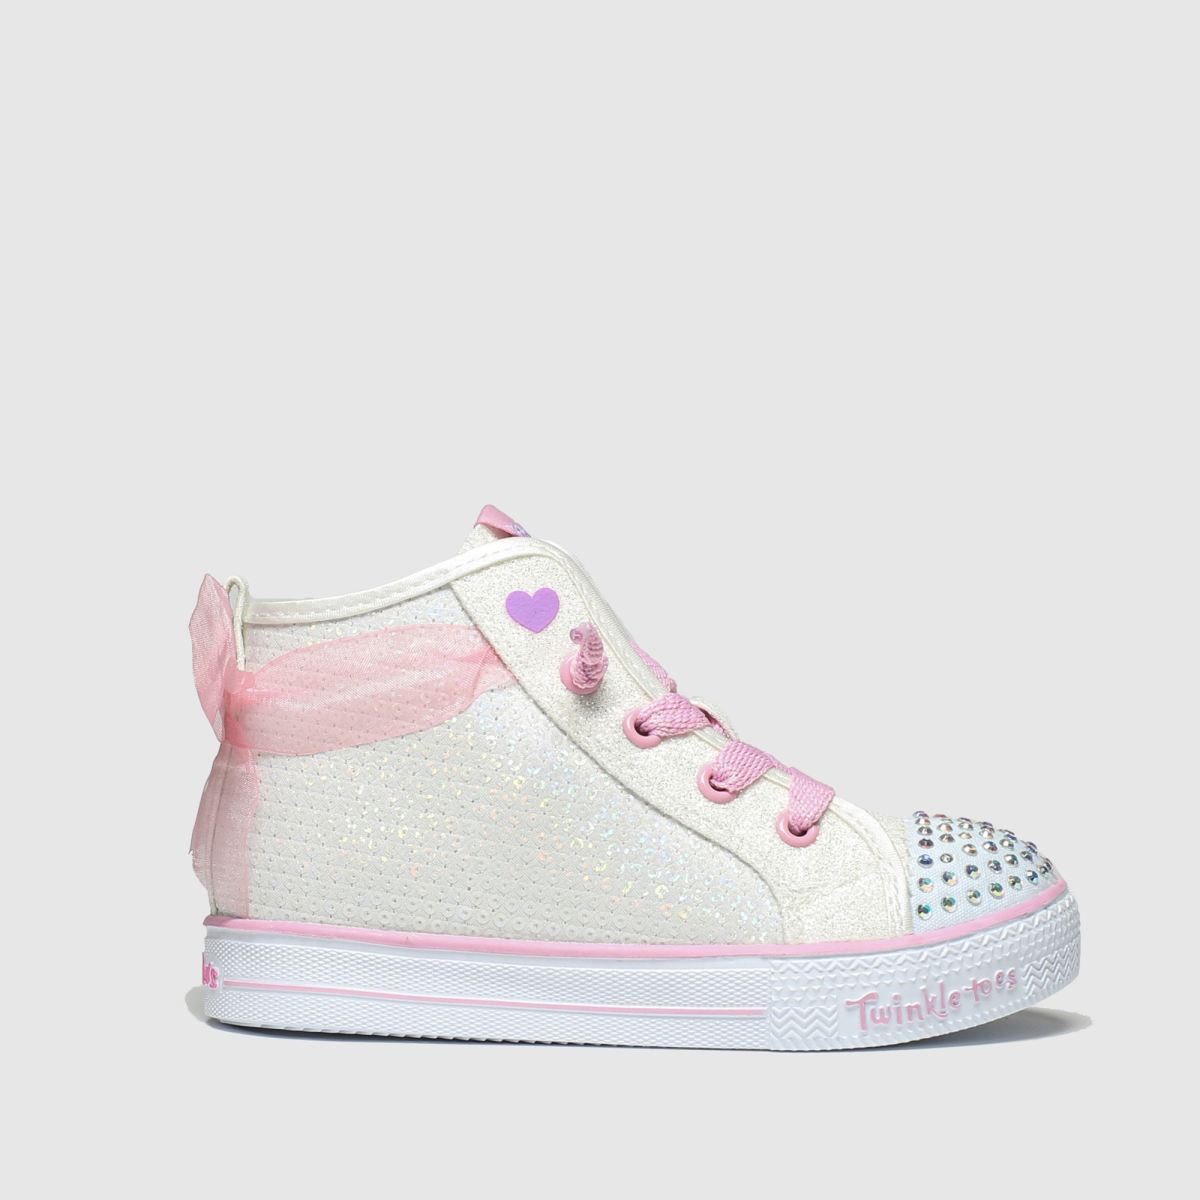 Skechers White & Pink Shuffle Lite Trainers Toddler